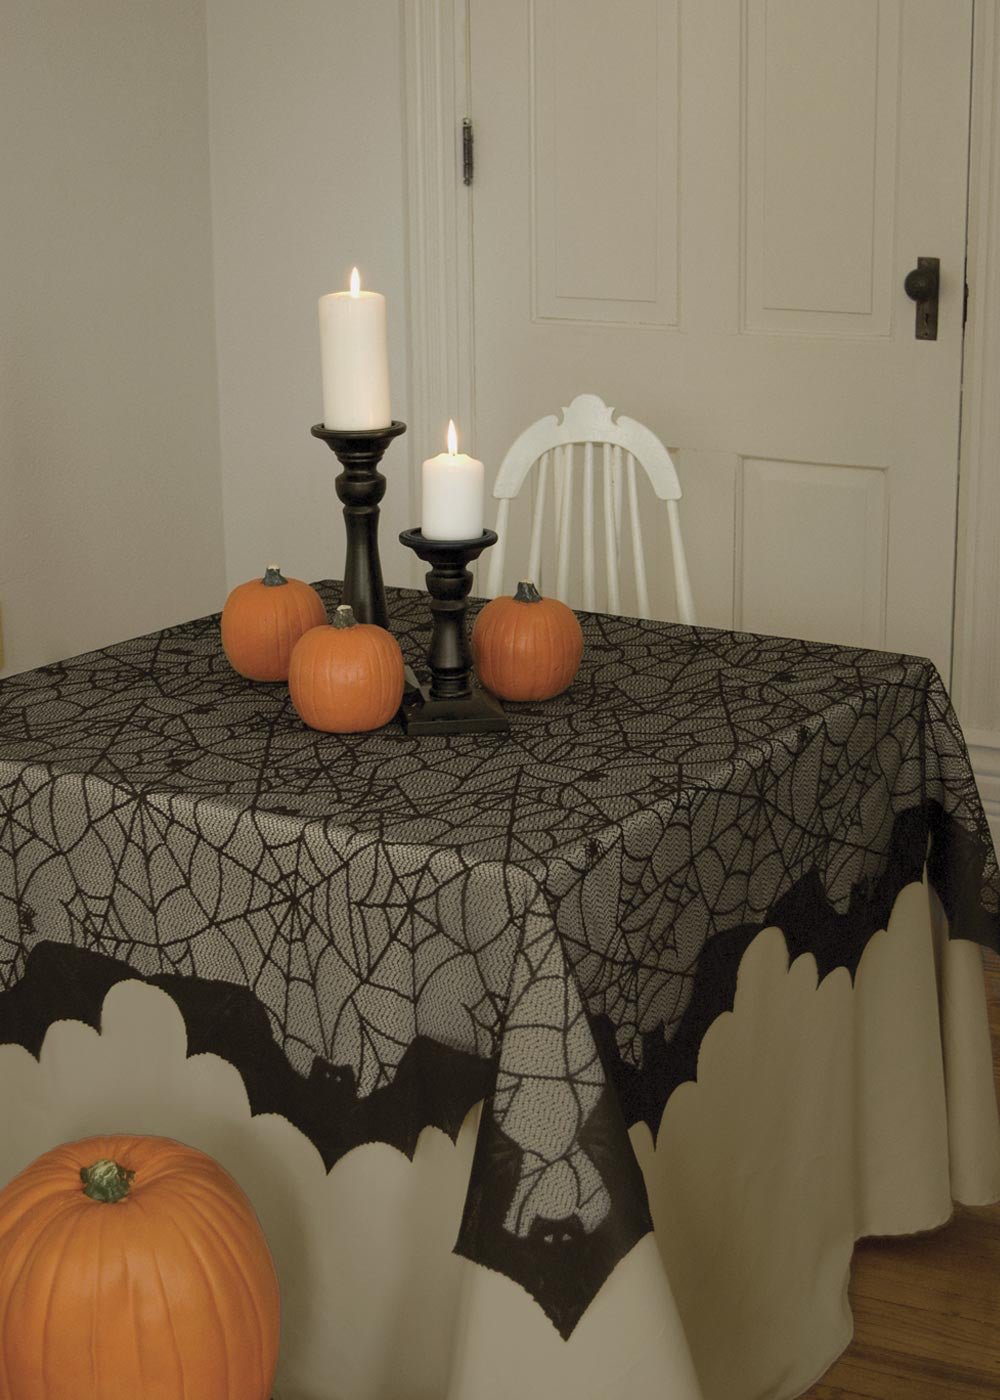 Halloween-Table Topper-Tablecloth-Seasonal Decor-58 x 58-Bats